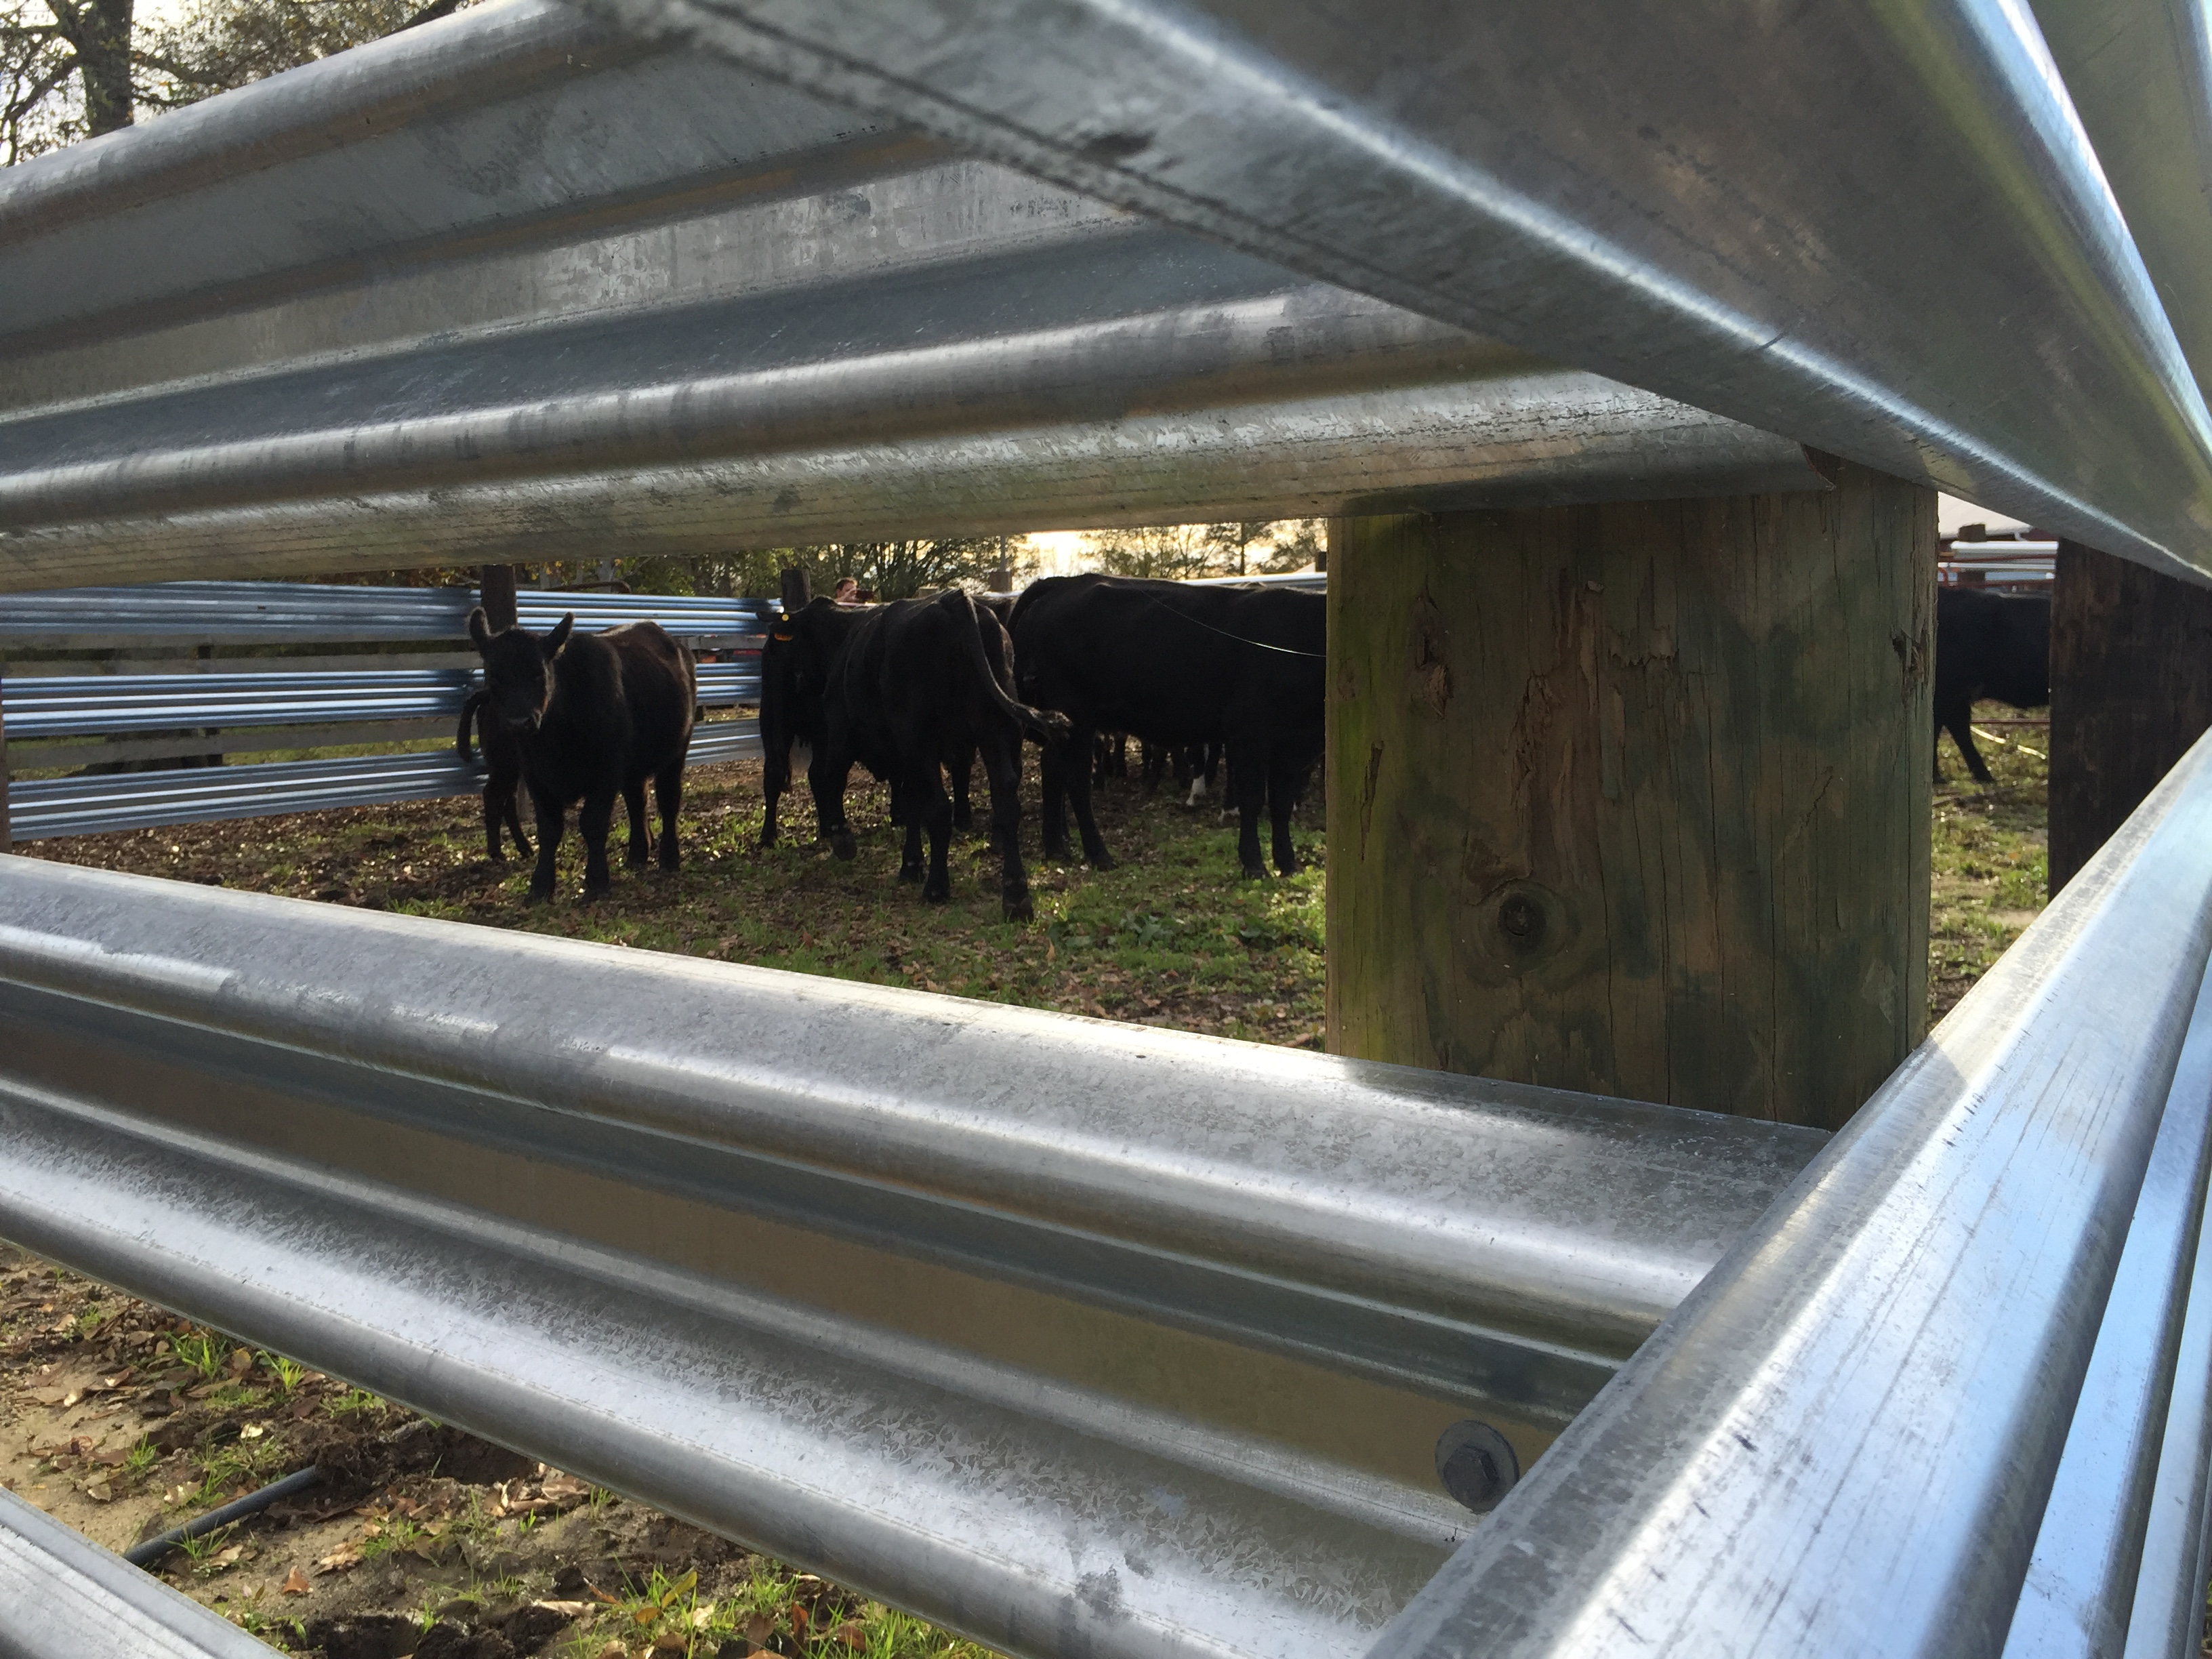 Cows in a corral built out of LiveStock Steel